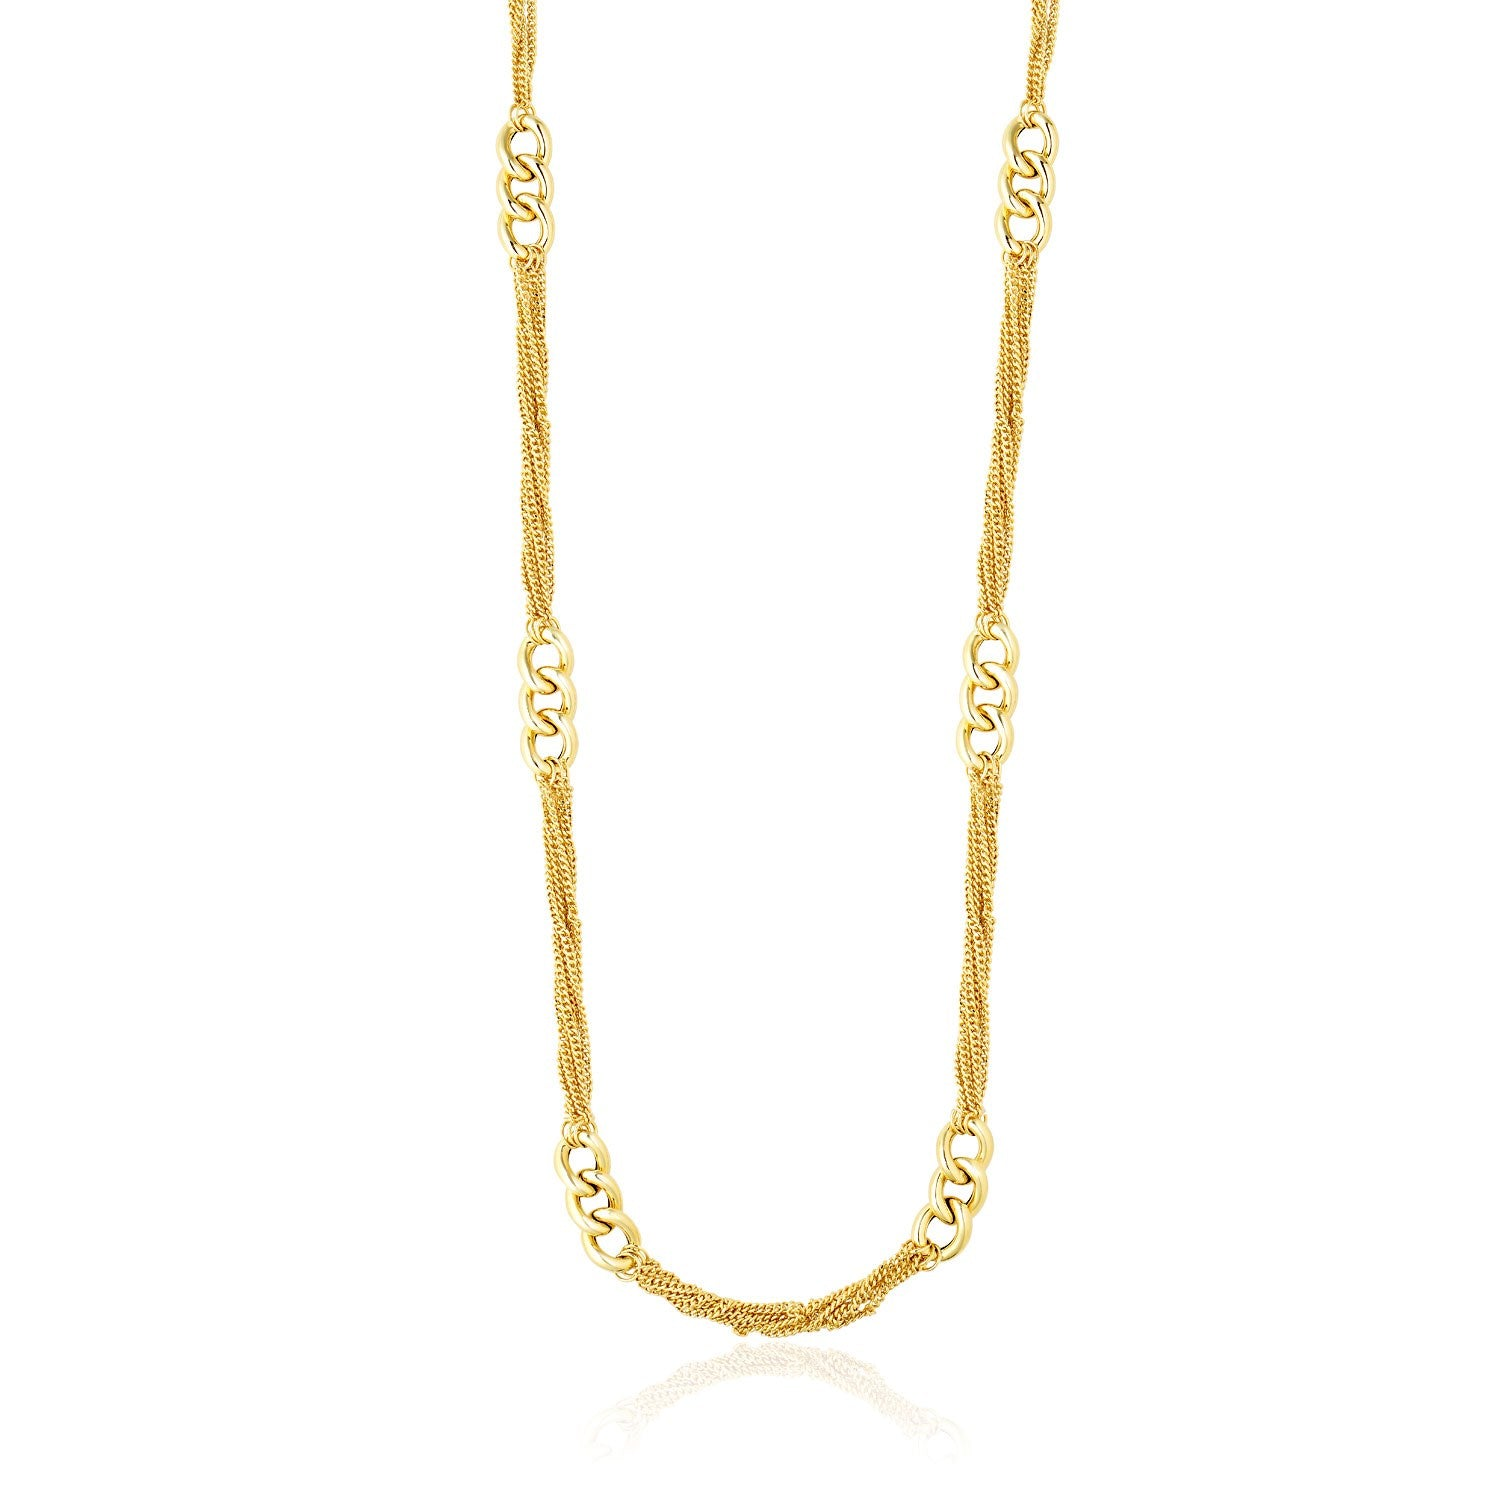 Unique Hollywood Style 14K Yellow Gold Necklace with Cluster Curb Chains and Oversized Link Stations